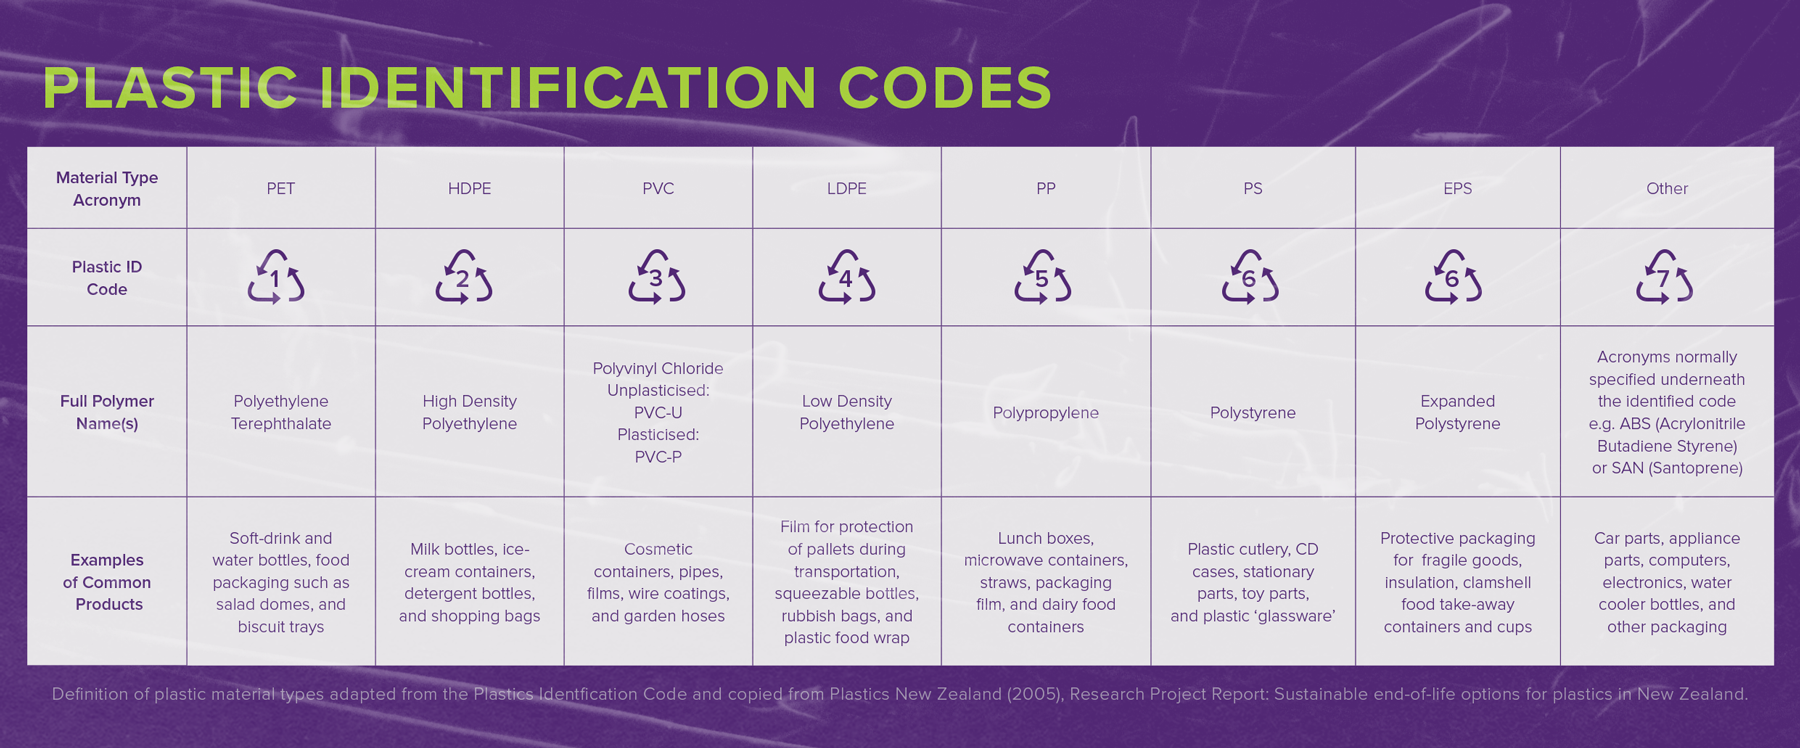 Plastic recycling identification codes